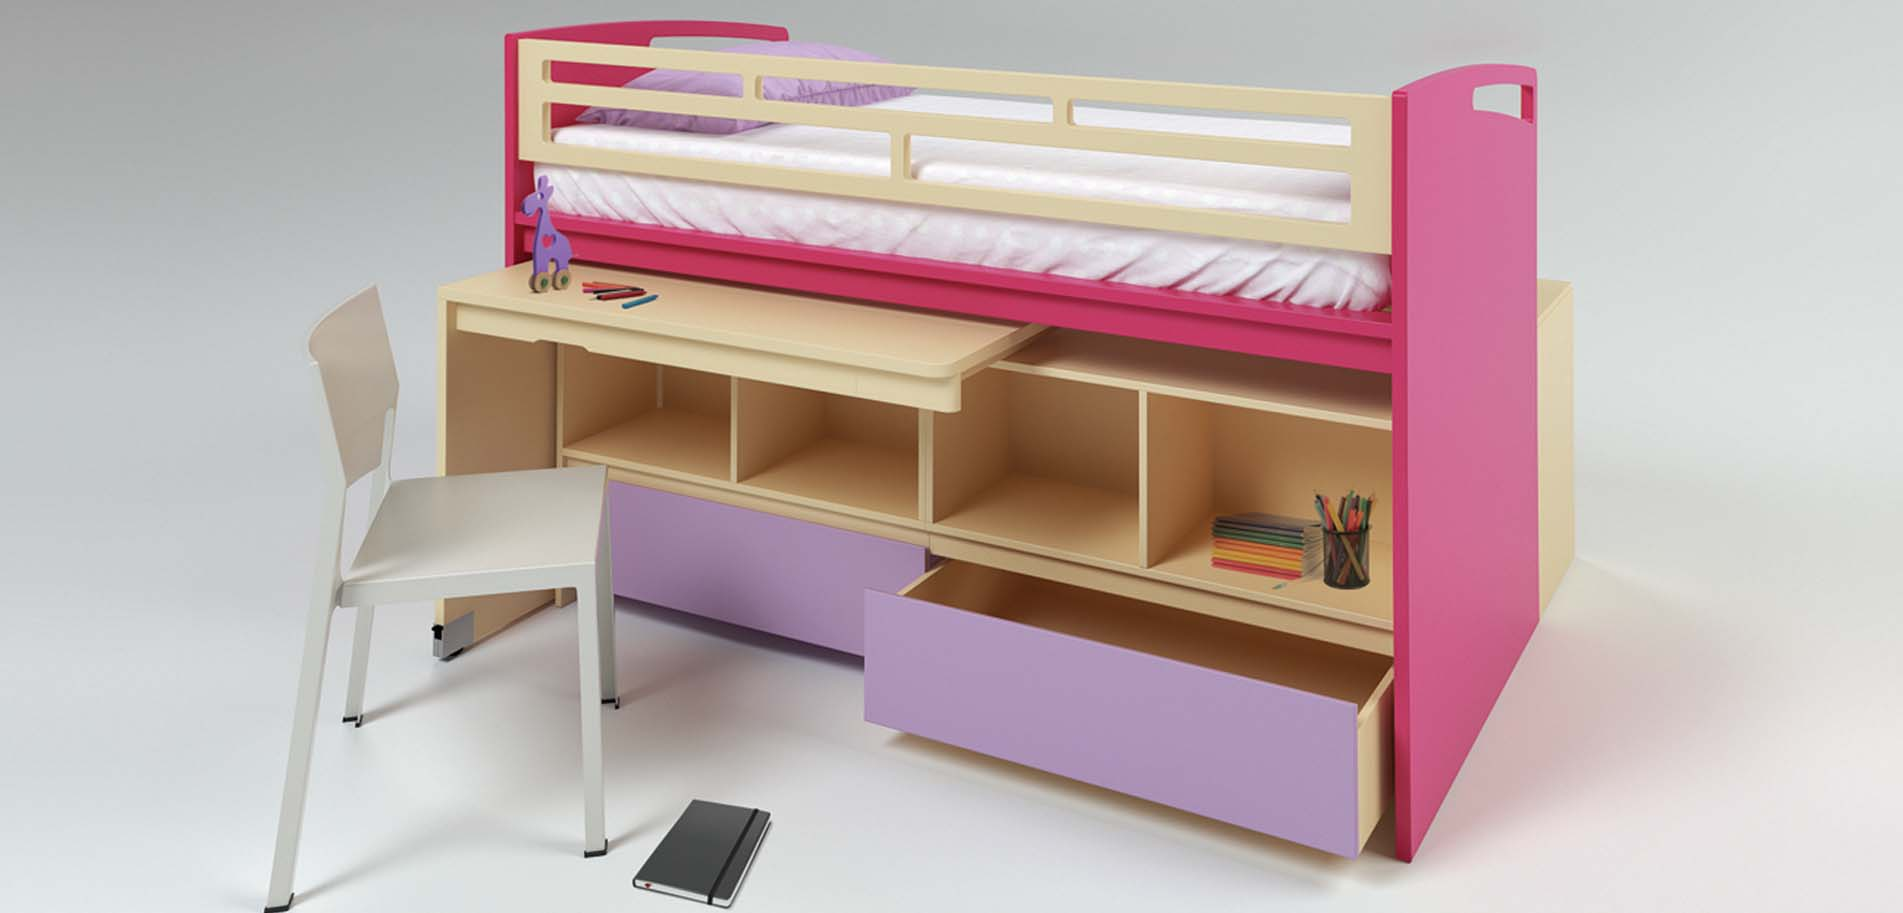 Children S Bunk Bed With Desk And Wheelchairs Drawers